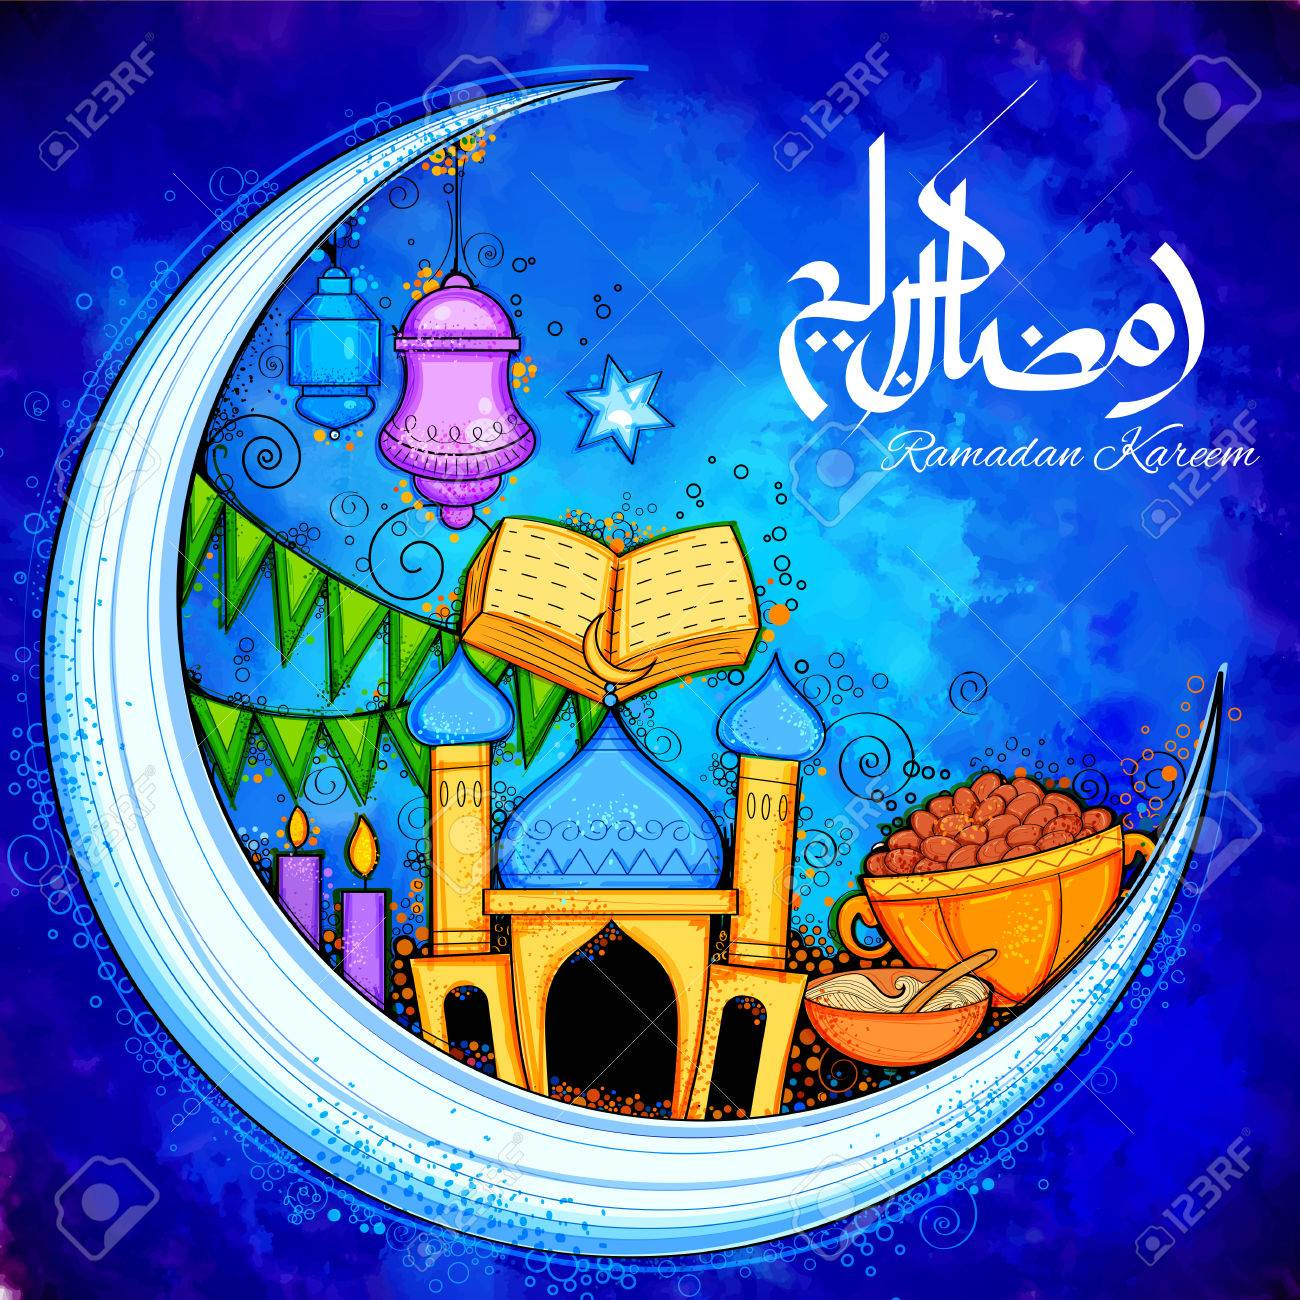 Eid Mubarak Happy Eid Background For Islam Religious Festival Royalty Free Cliparts Vectors And Stock Illustration Image 78256608